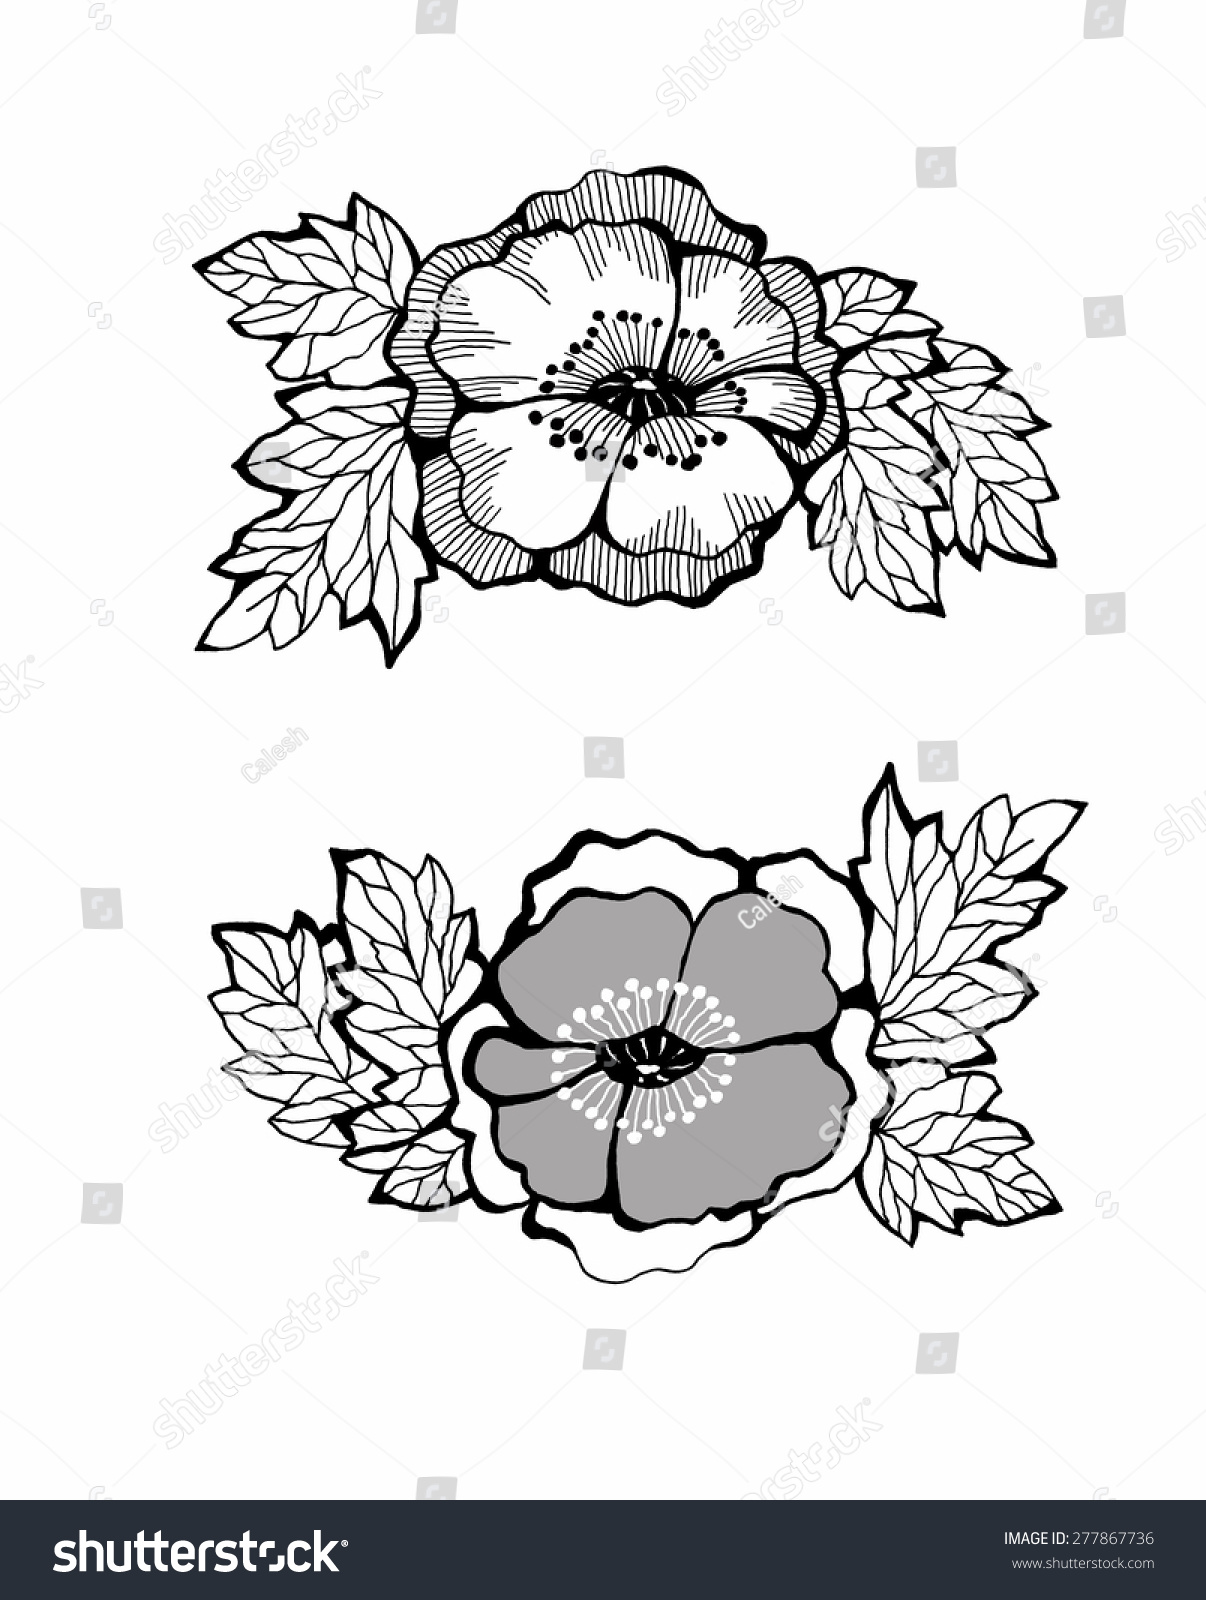 Peony flower isolated on white stock vector 368014568 shutterstock - Flowers Black And White Isolated On White Background Stock Vector